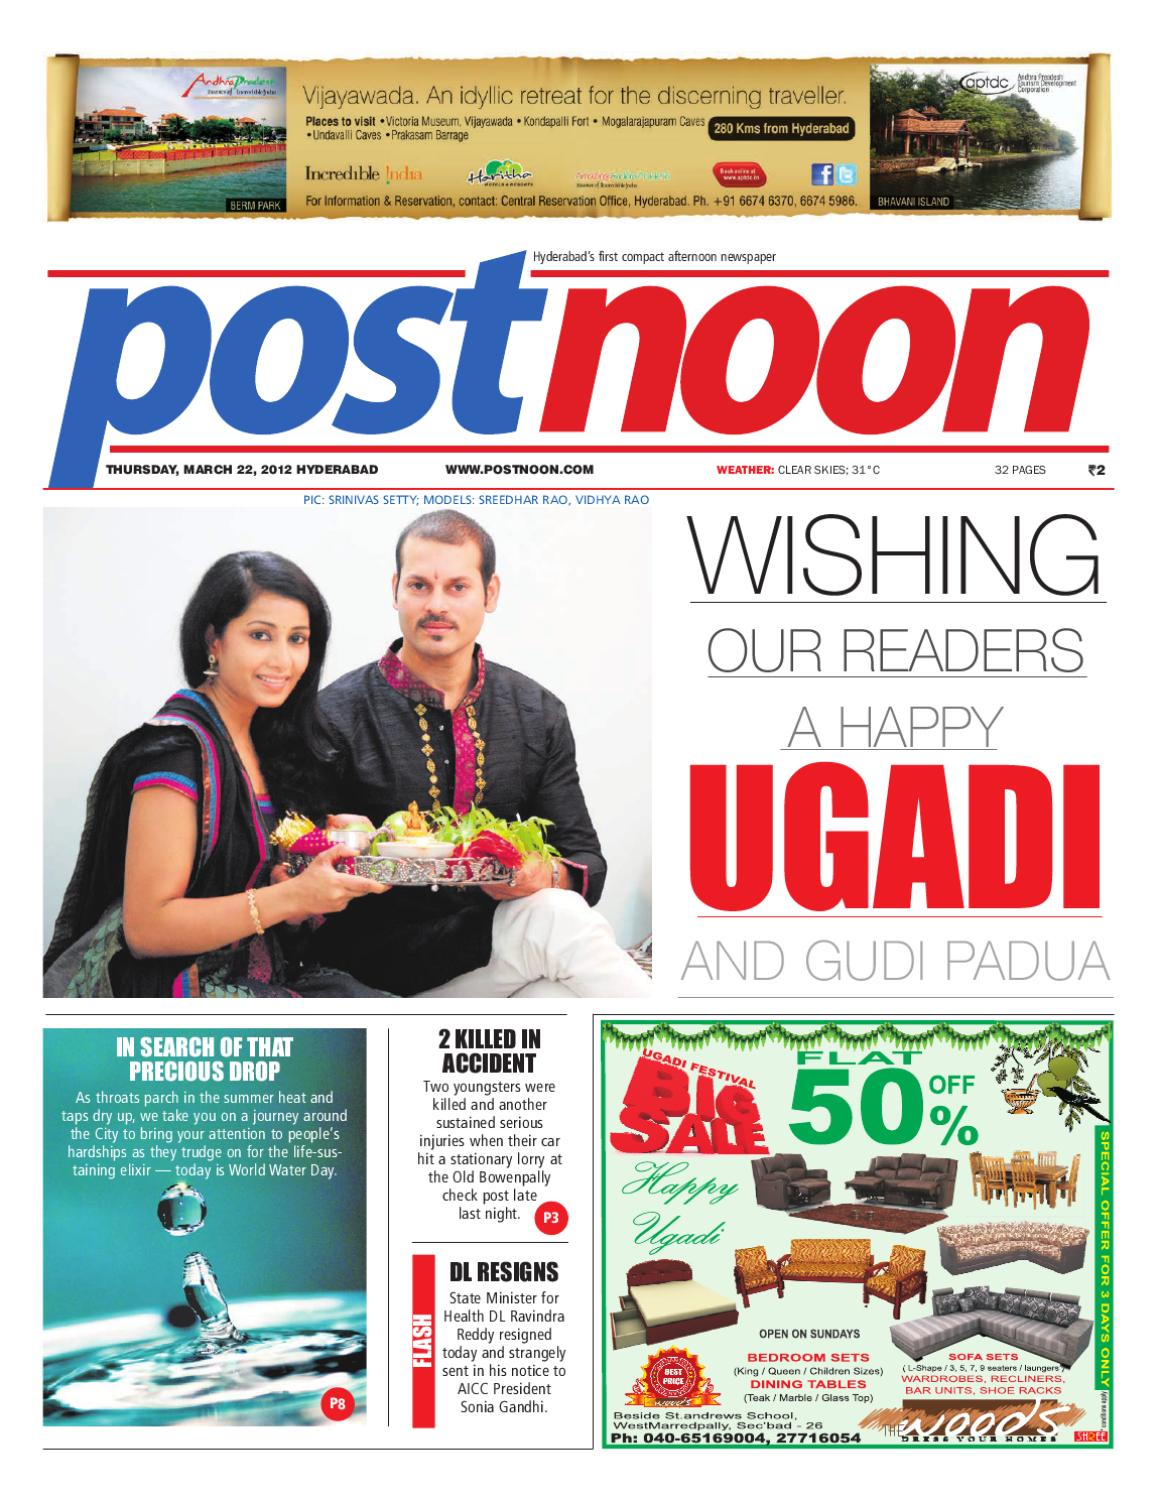 Postnoon E-Paper for 22 March 2012 by Scribble Media & Entertainment